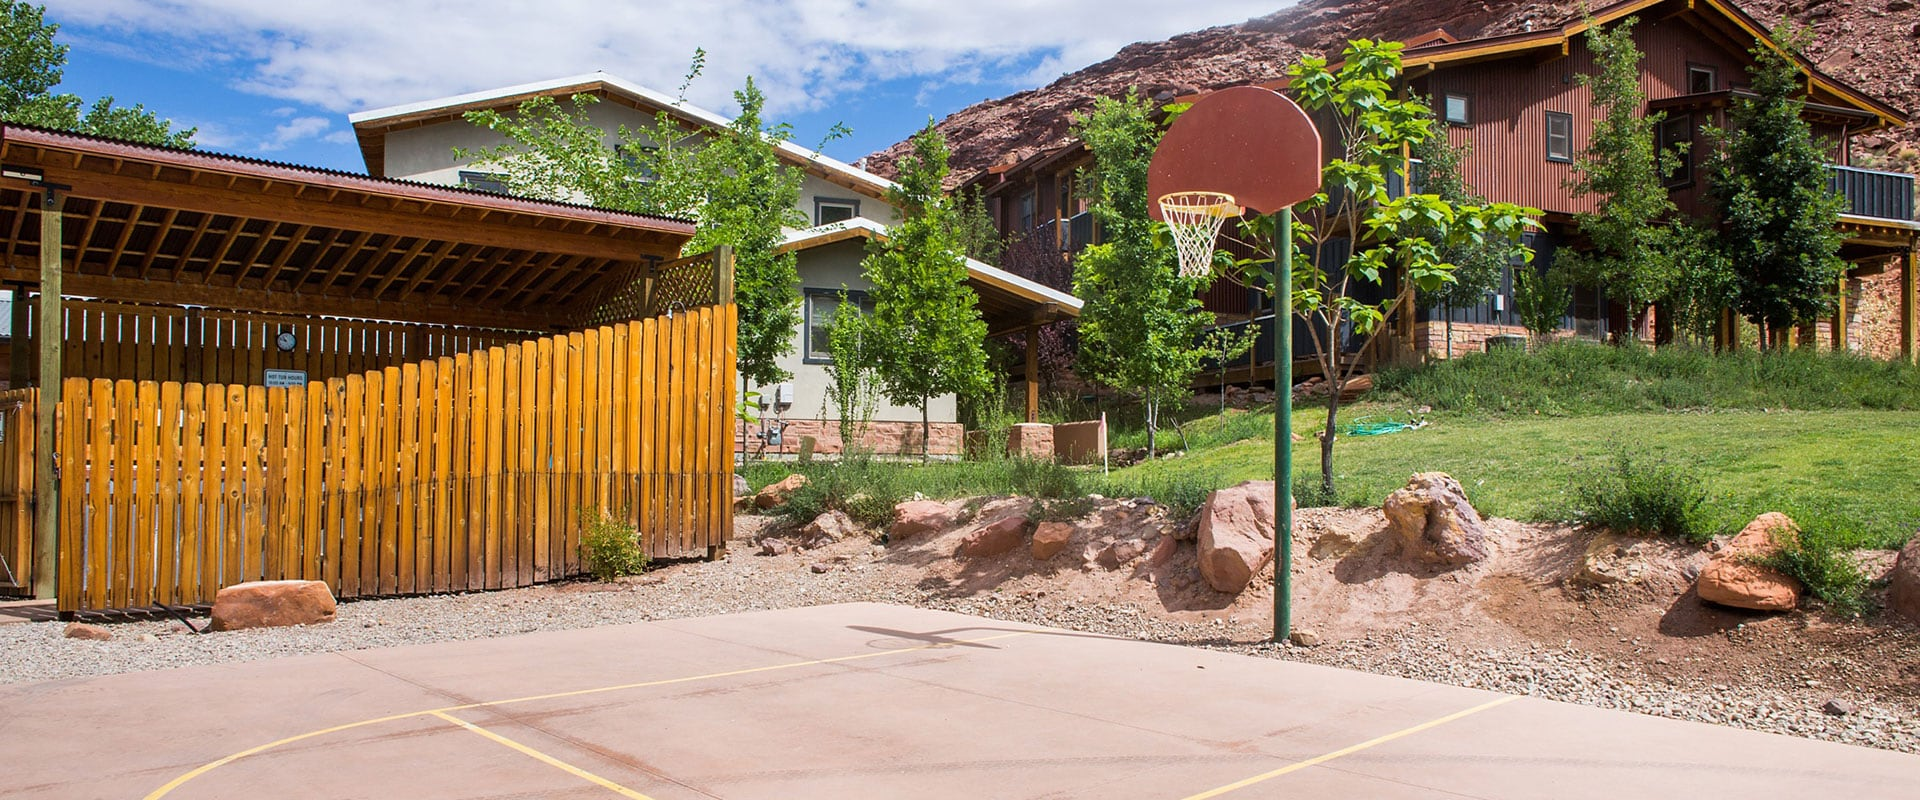 The recreation area of Moab Springs Ranch features a basketball court with in-ground pole and hoop and the whirlpool area enclosed by wood slat fences and covered by a slanted wood roof.